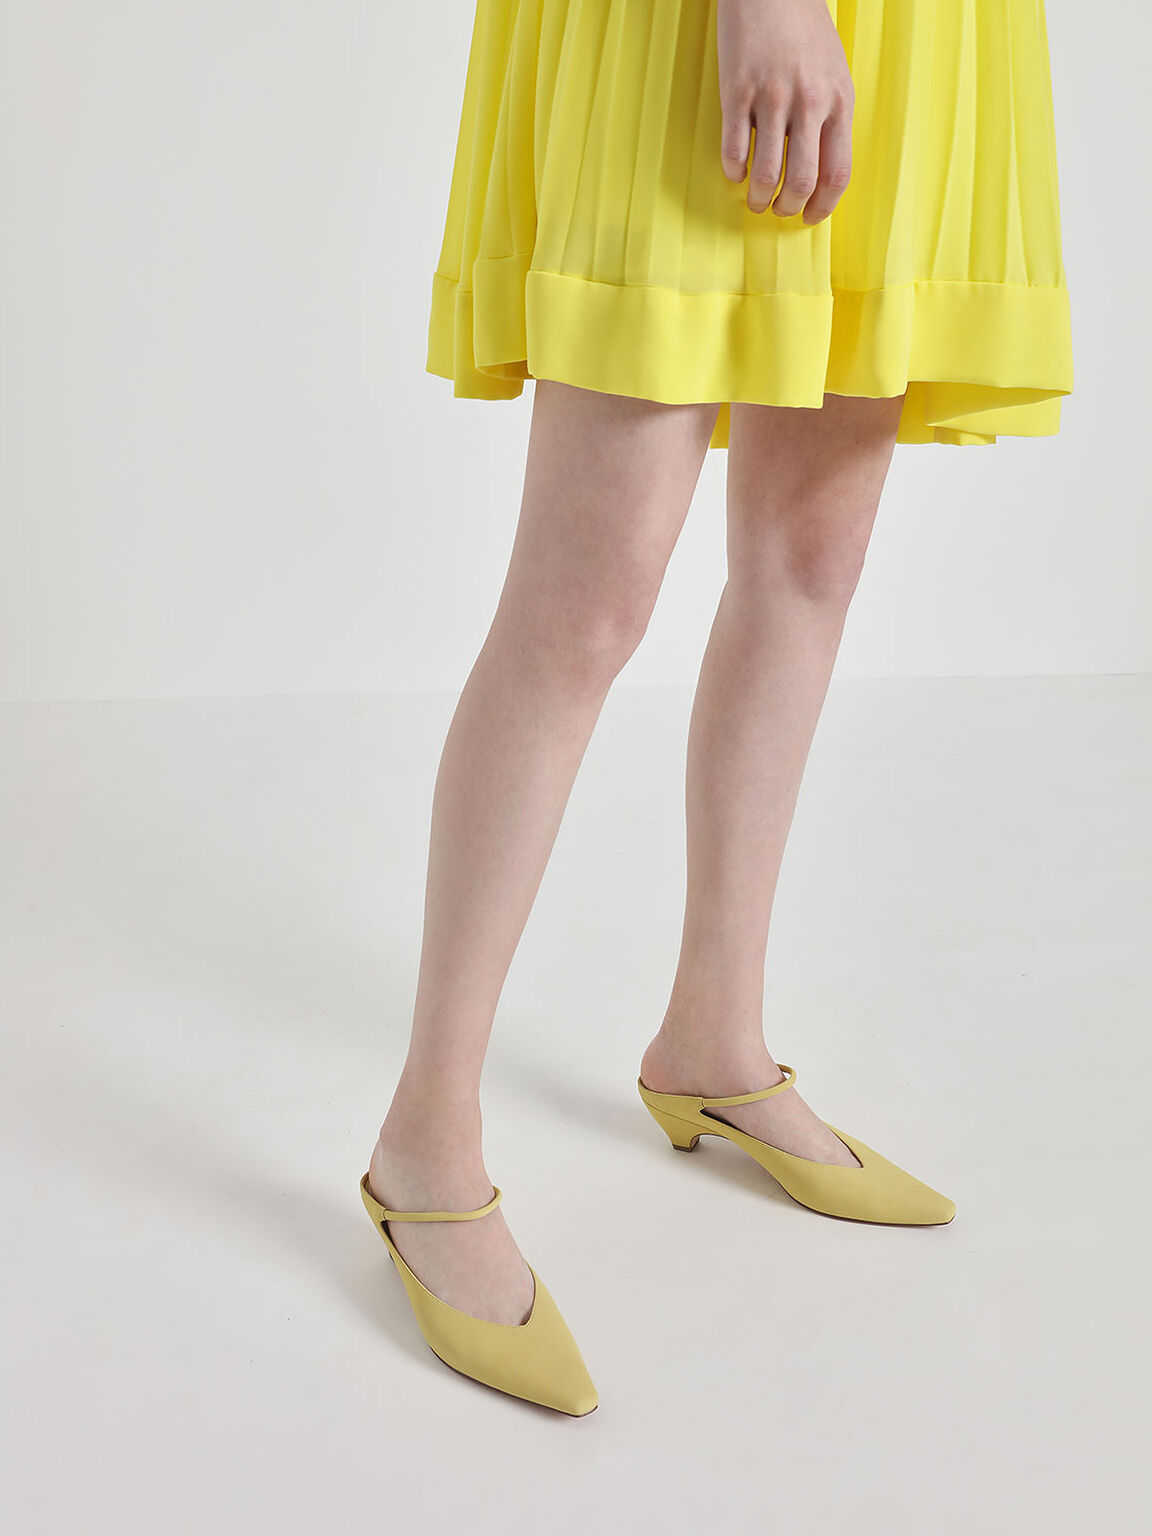 V-Cut Ankle Strap Kitten Heel Mules, Yellow, hi-res